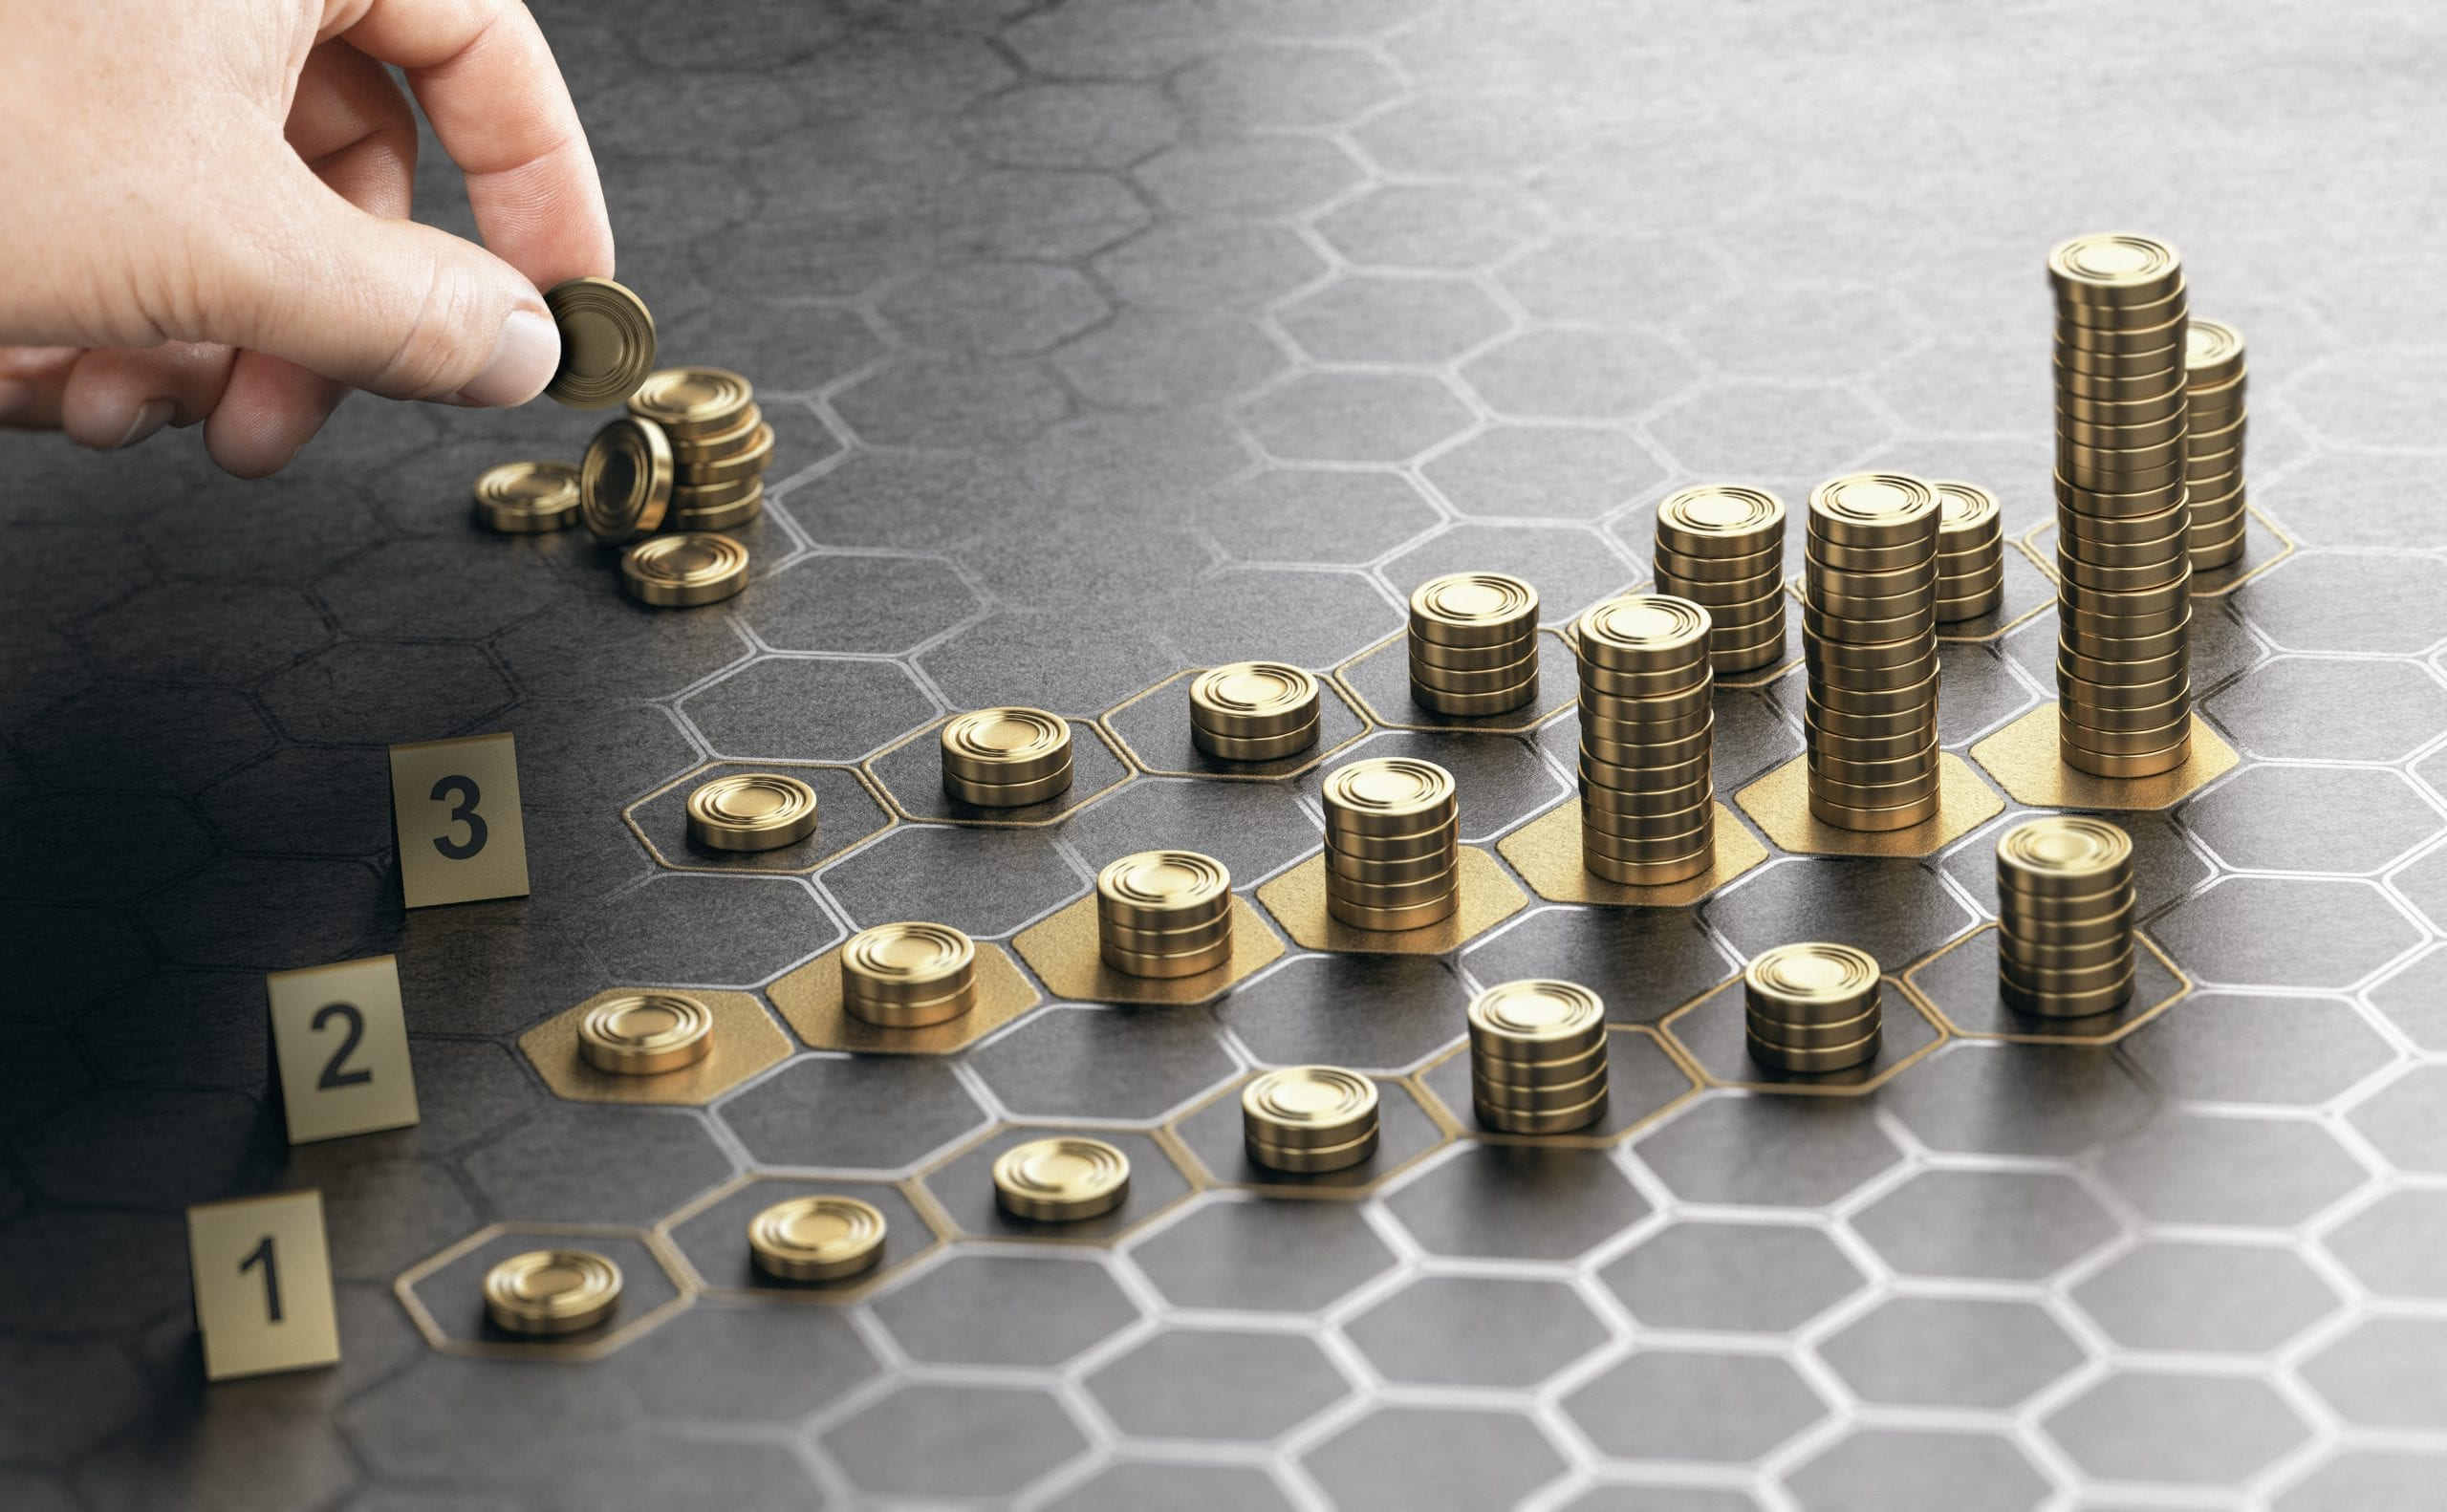 Why investors should invest in crypto? Diversification